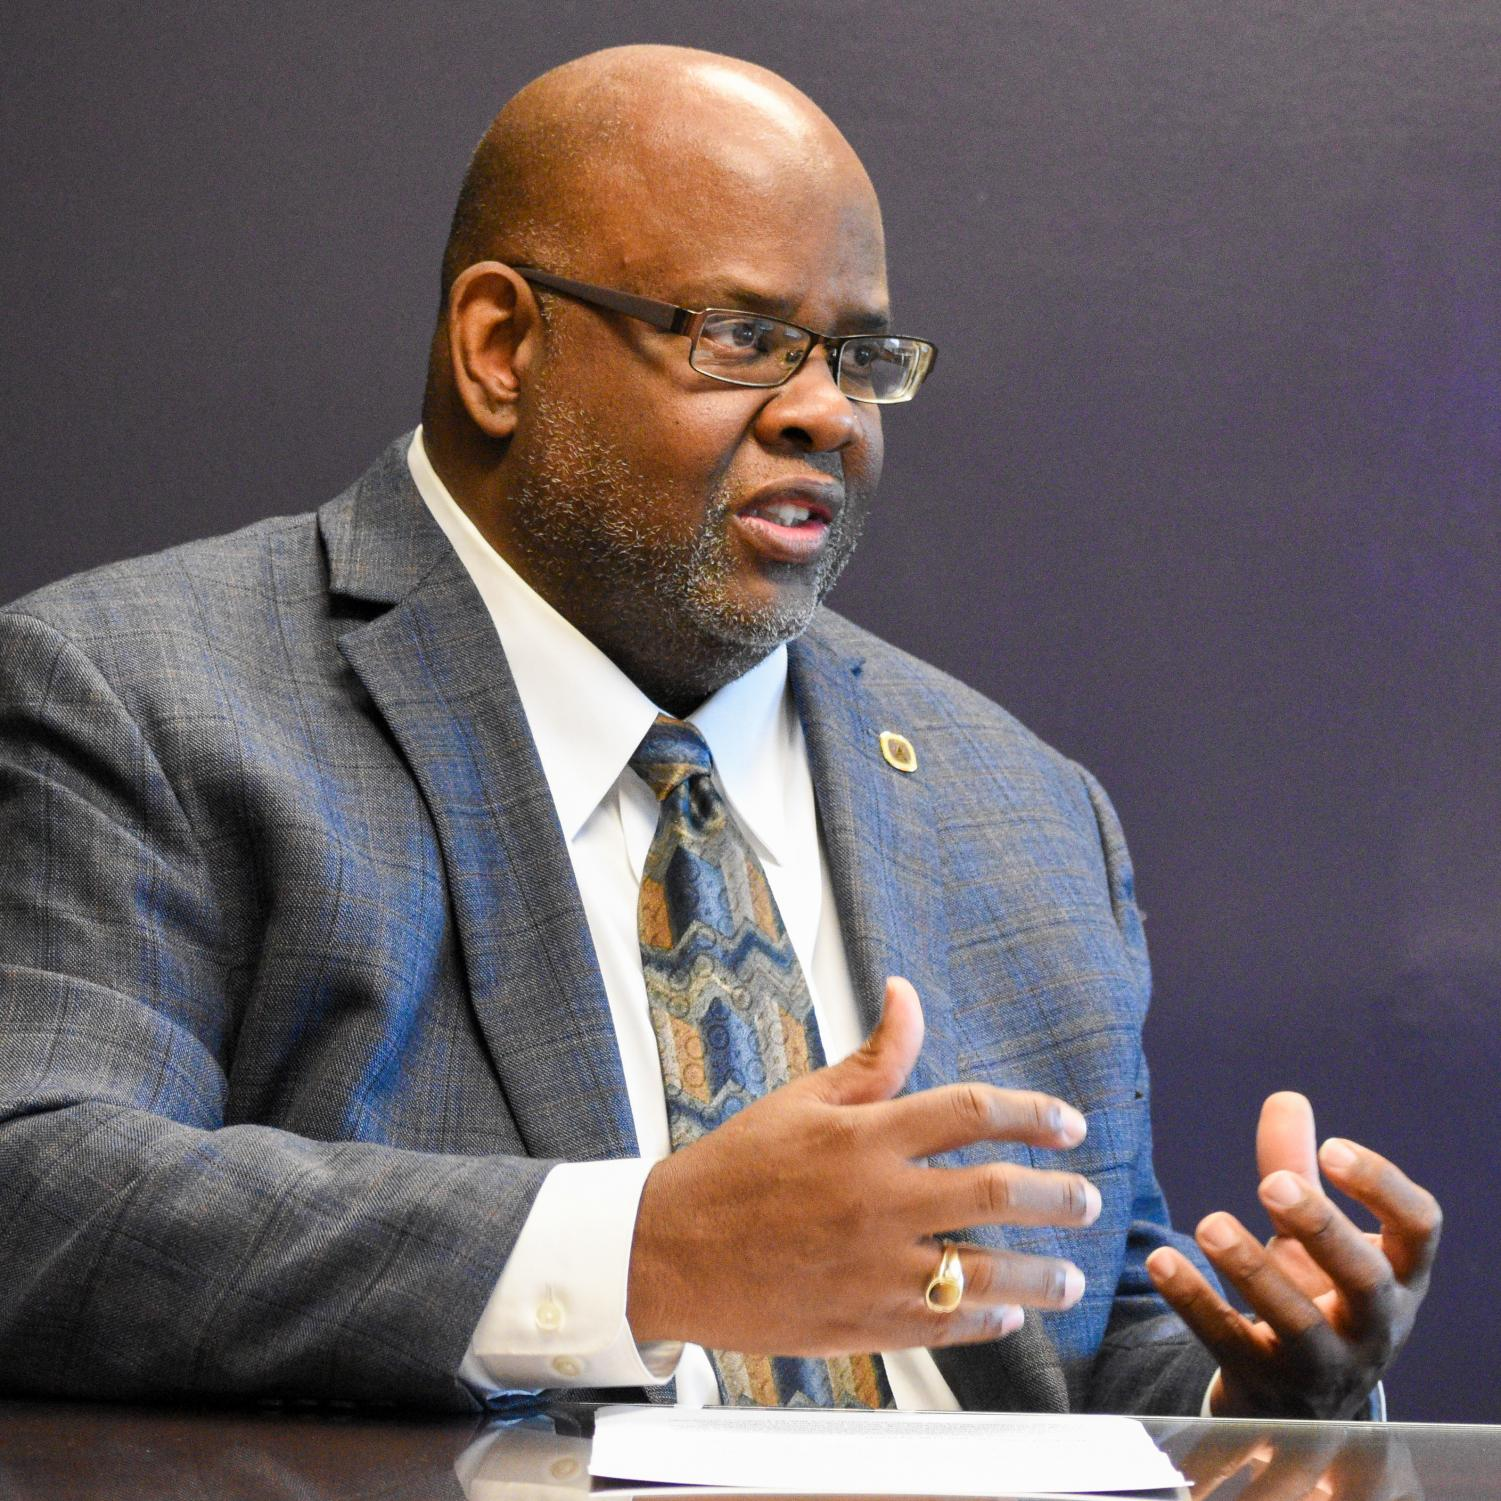 Sevententh Chancellor Dr. Dwight C. Watson explains how his academic journey brought him to UW-Whitewater.